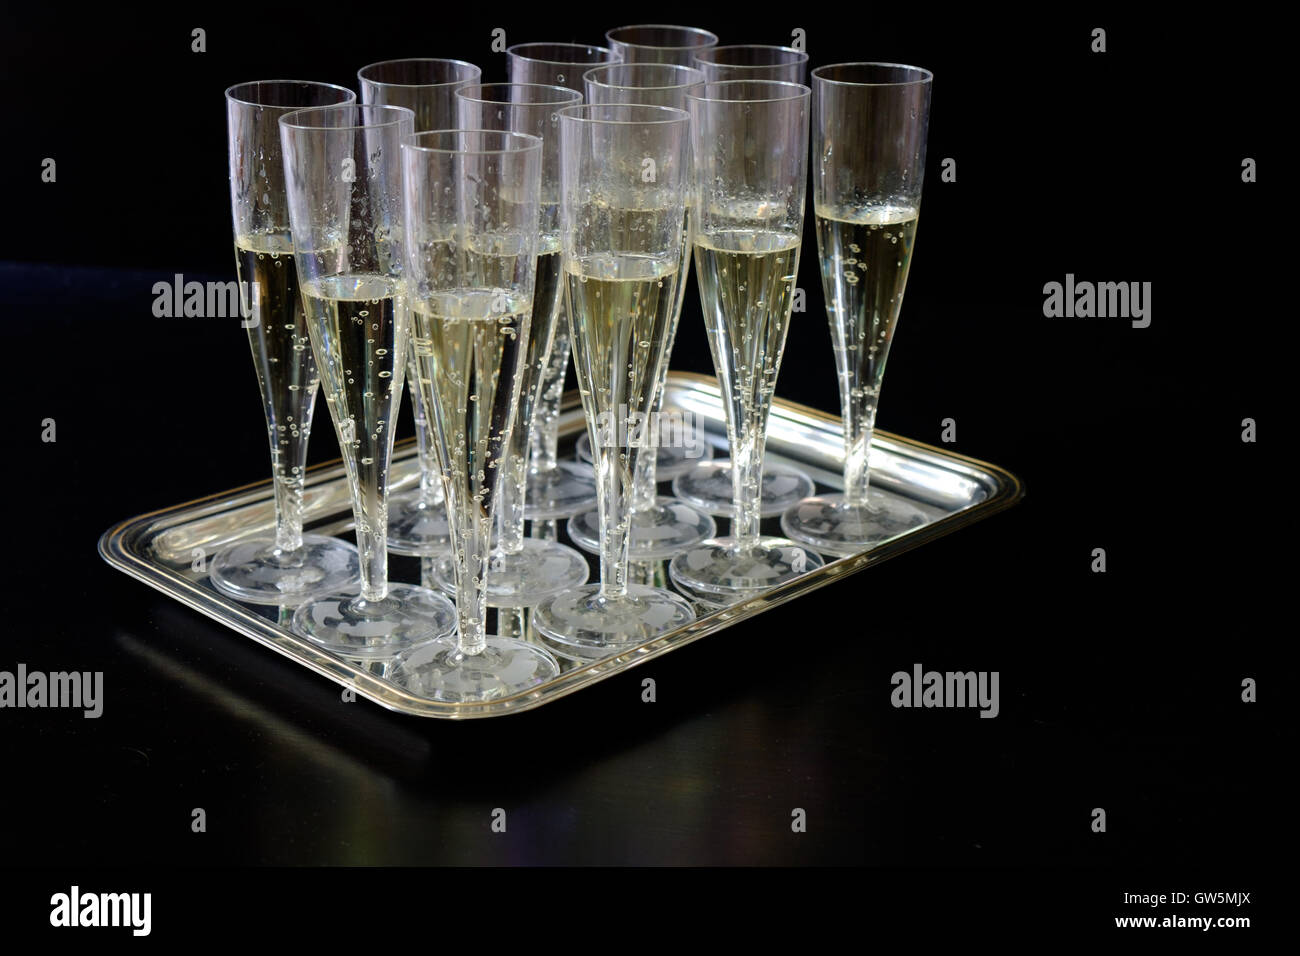 Champagne flutes glasses isolated on black background - Stock Image